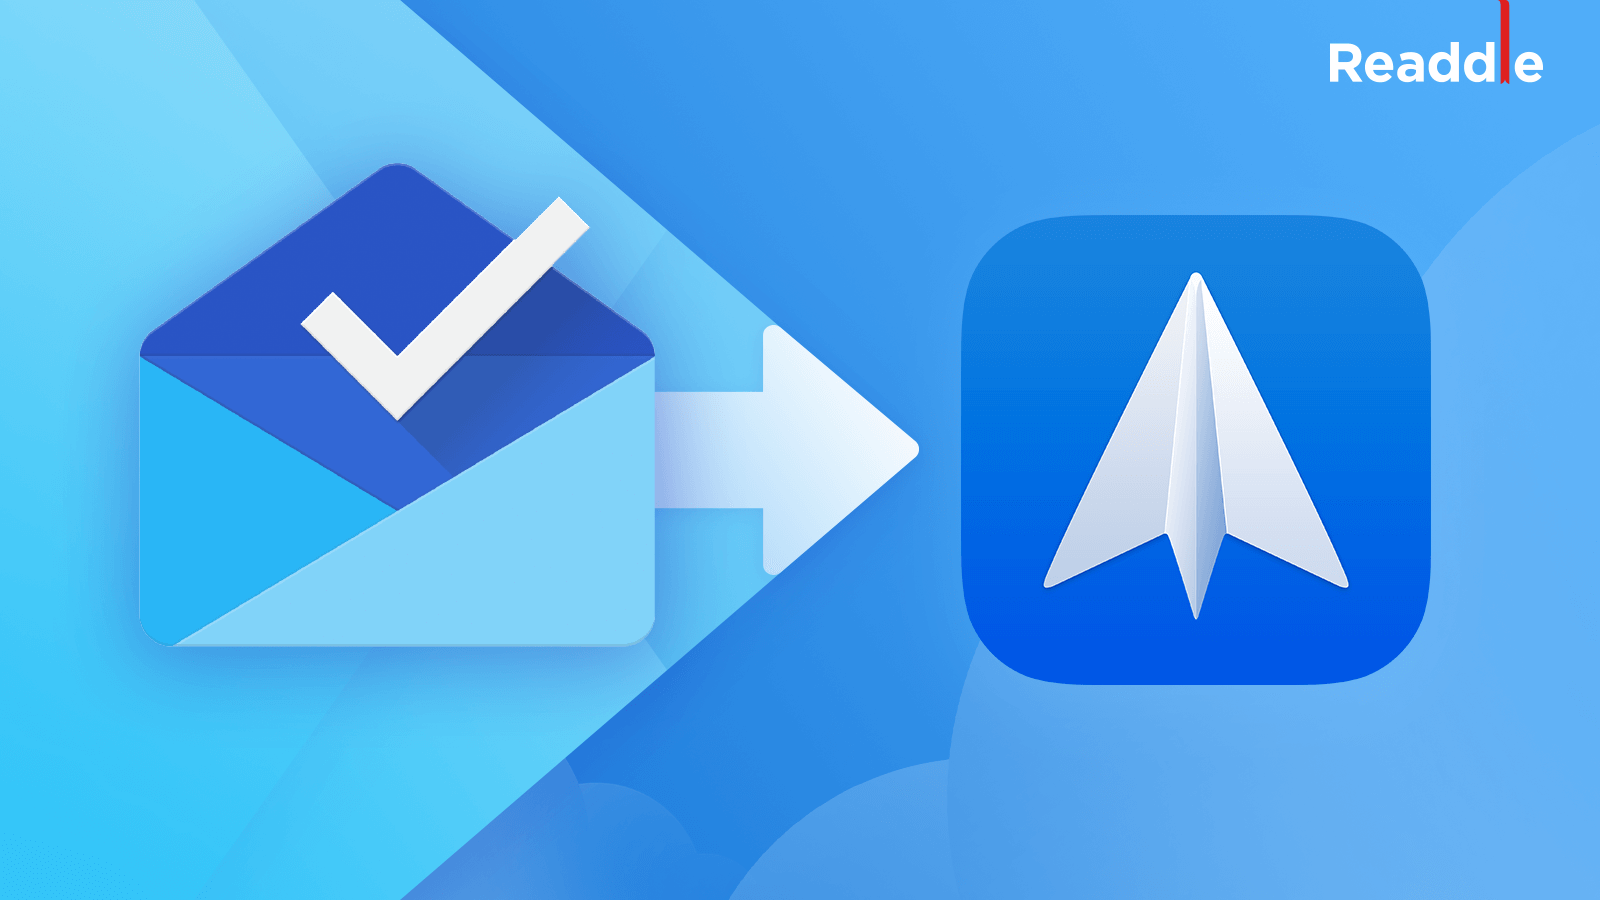 7 Reasons Why Spark Mail App Makes the Best Inbox by Gmail Alternative